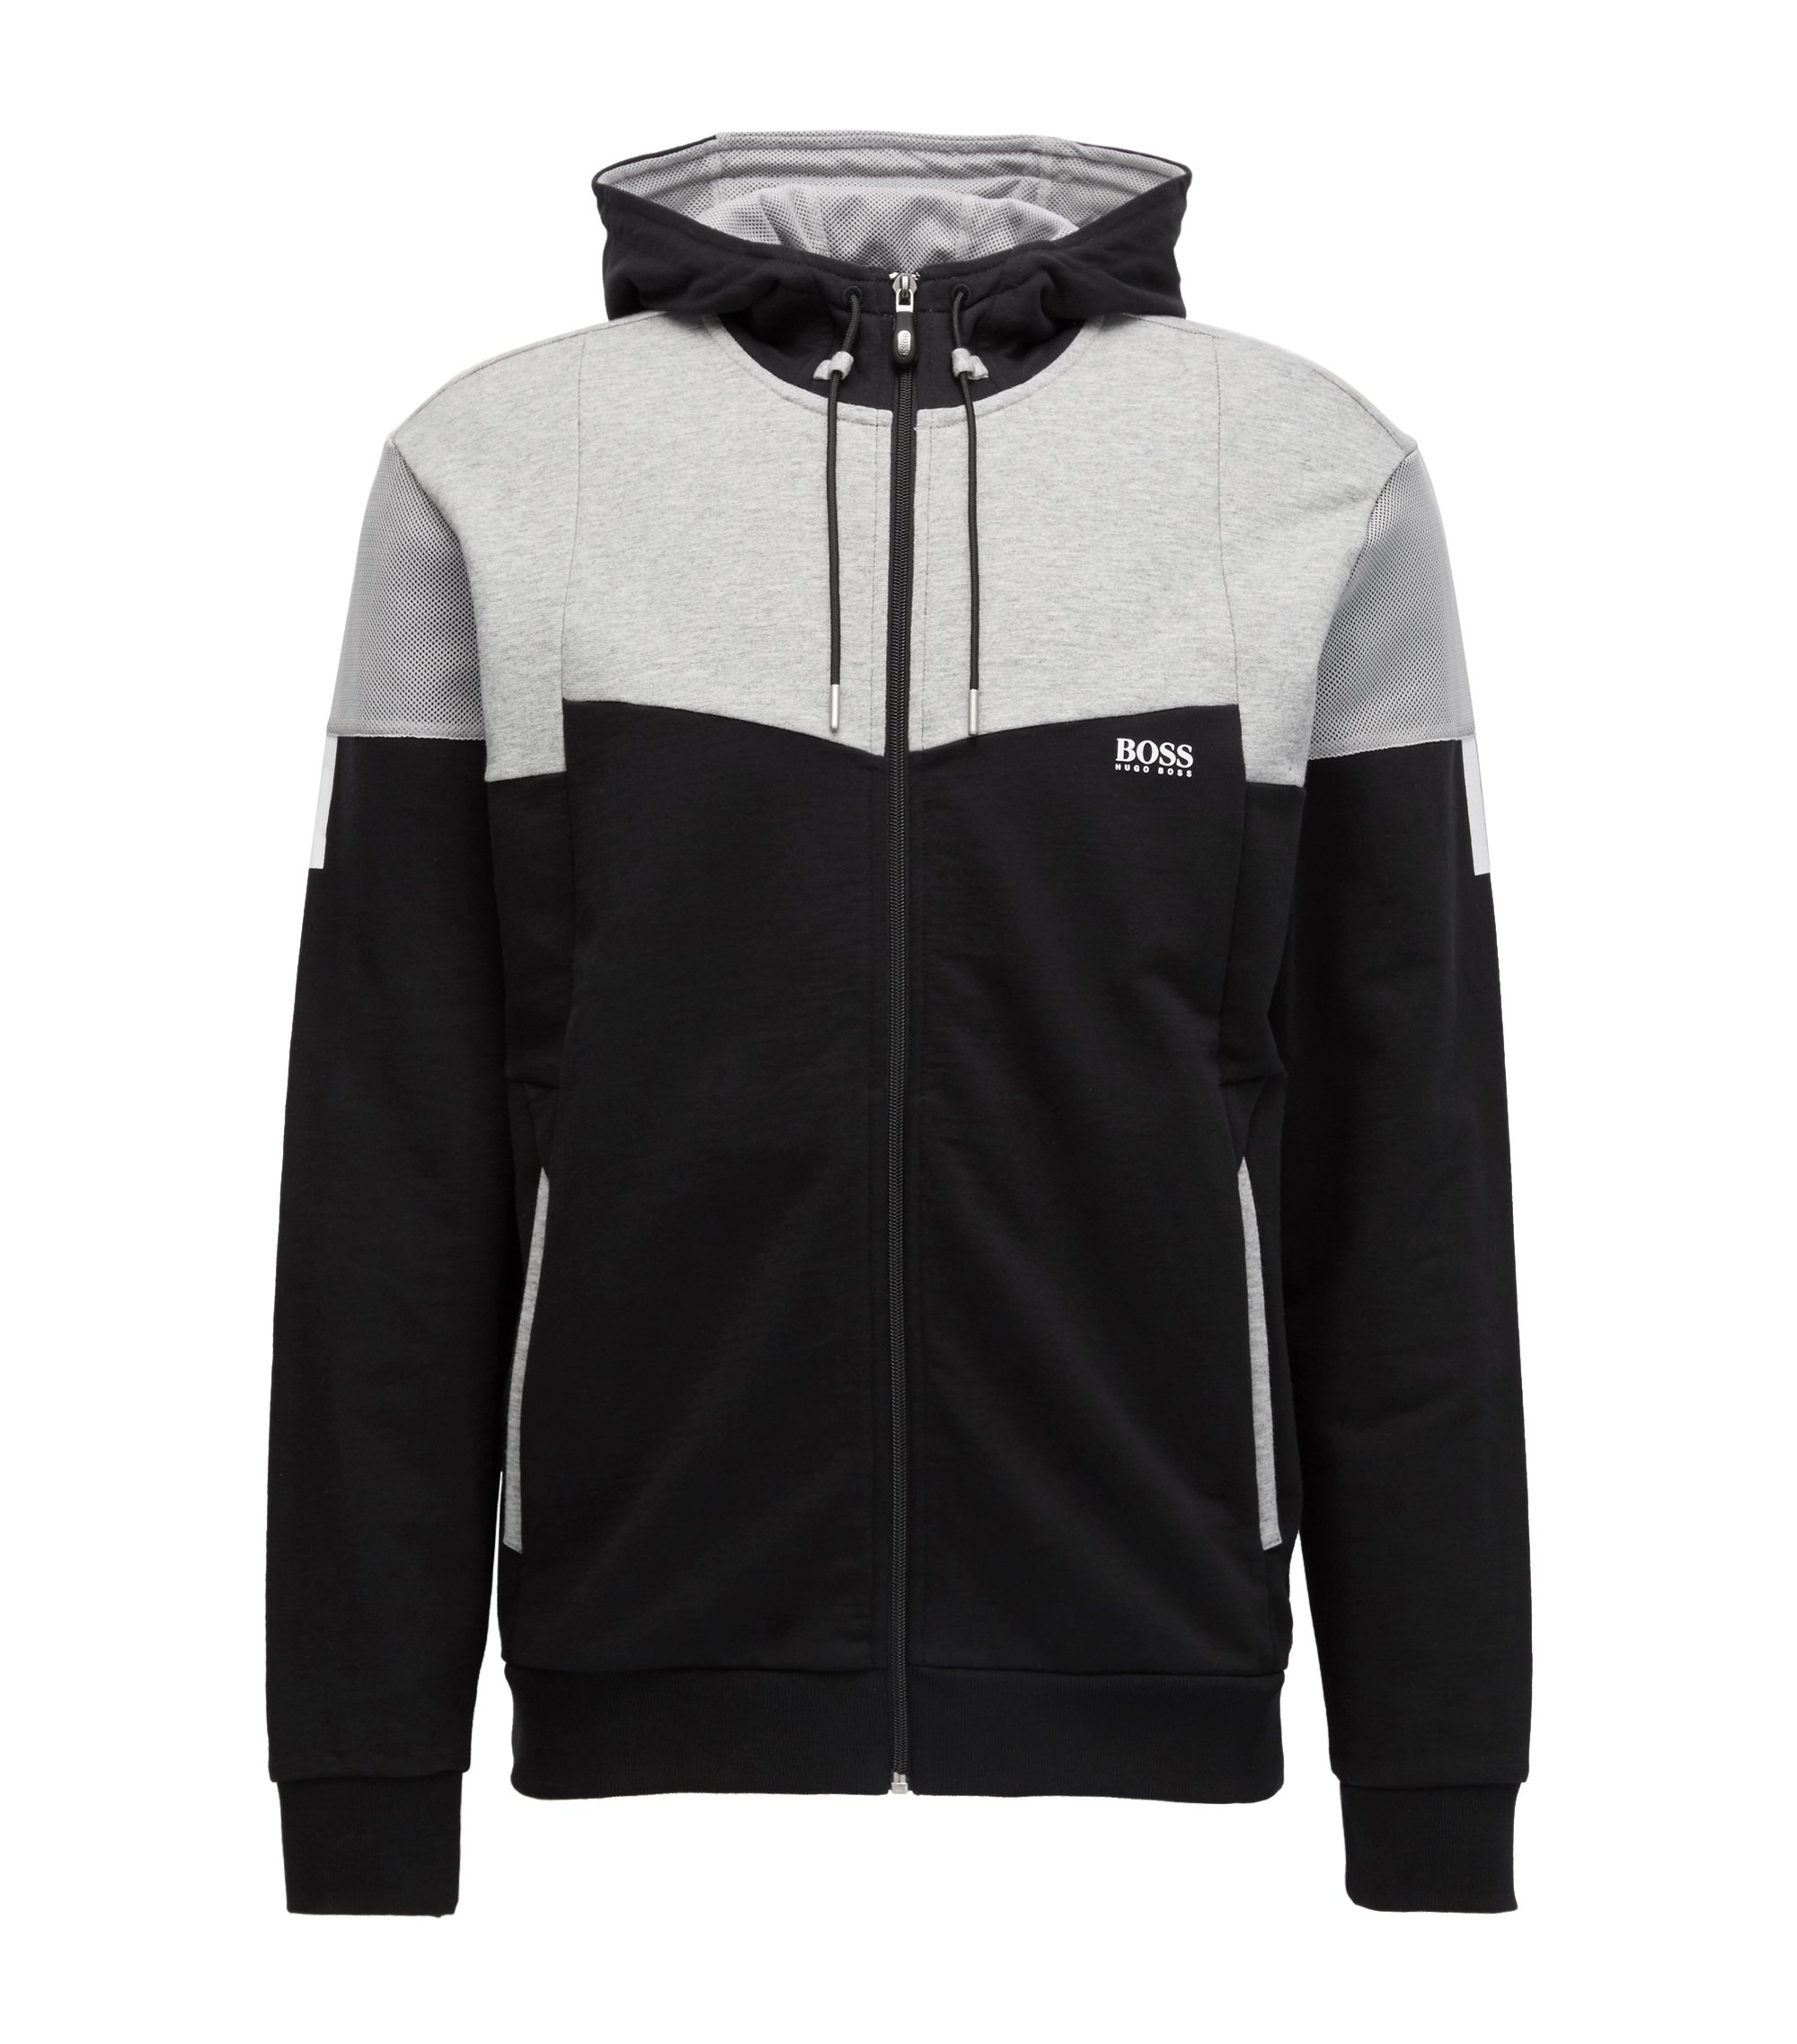 Cotton Full-Zip Hoodie | Saggy, Black